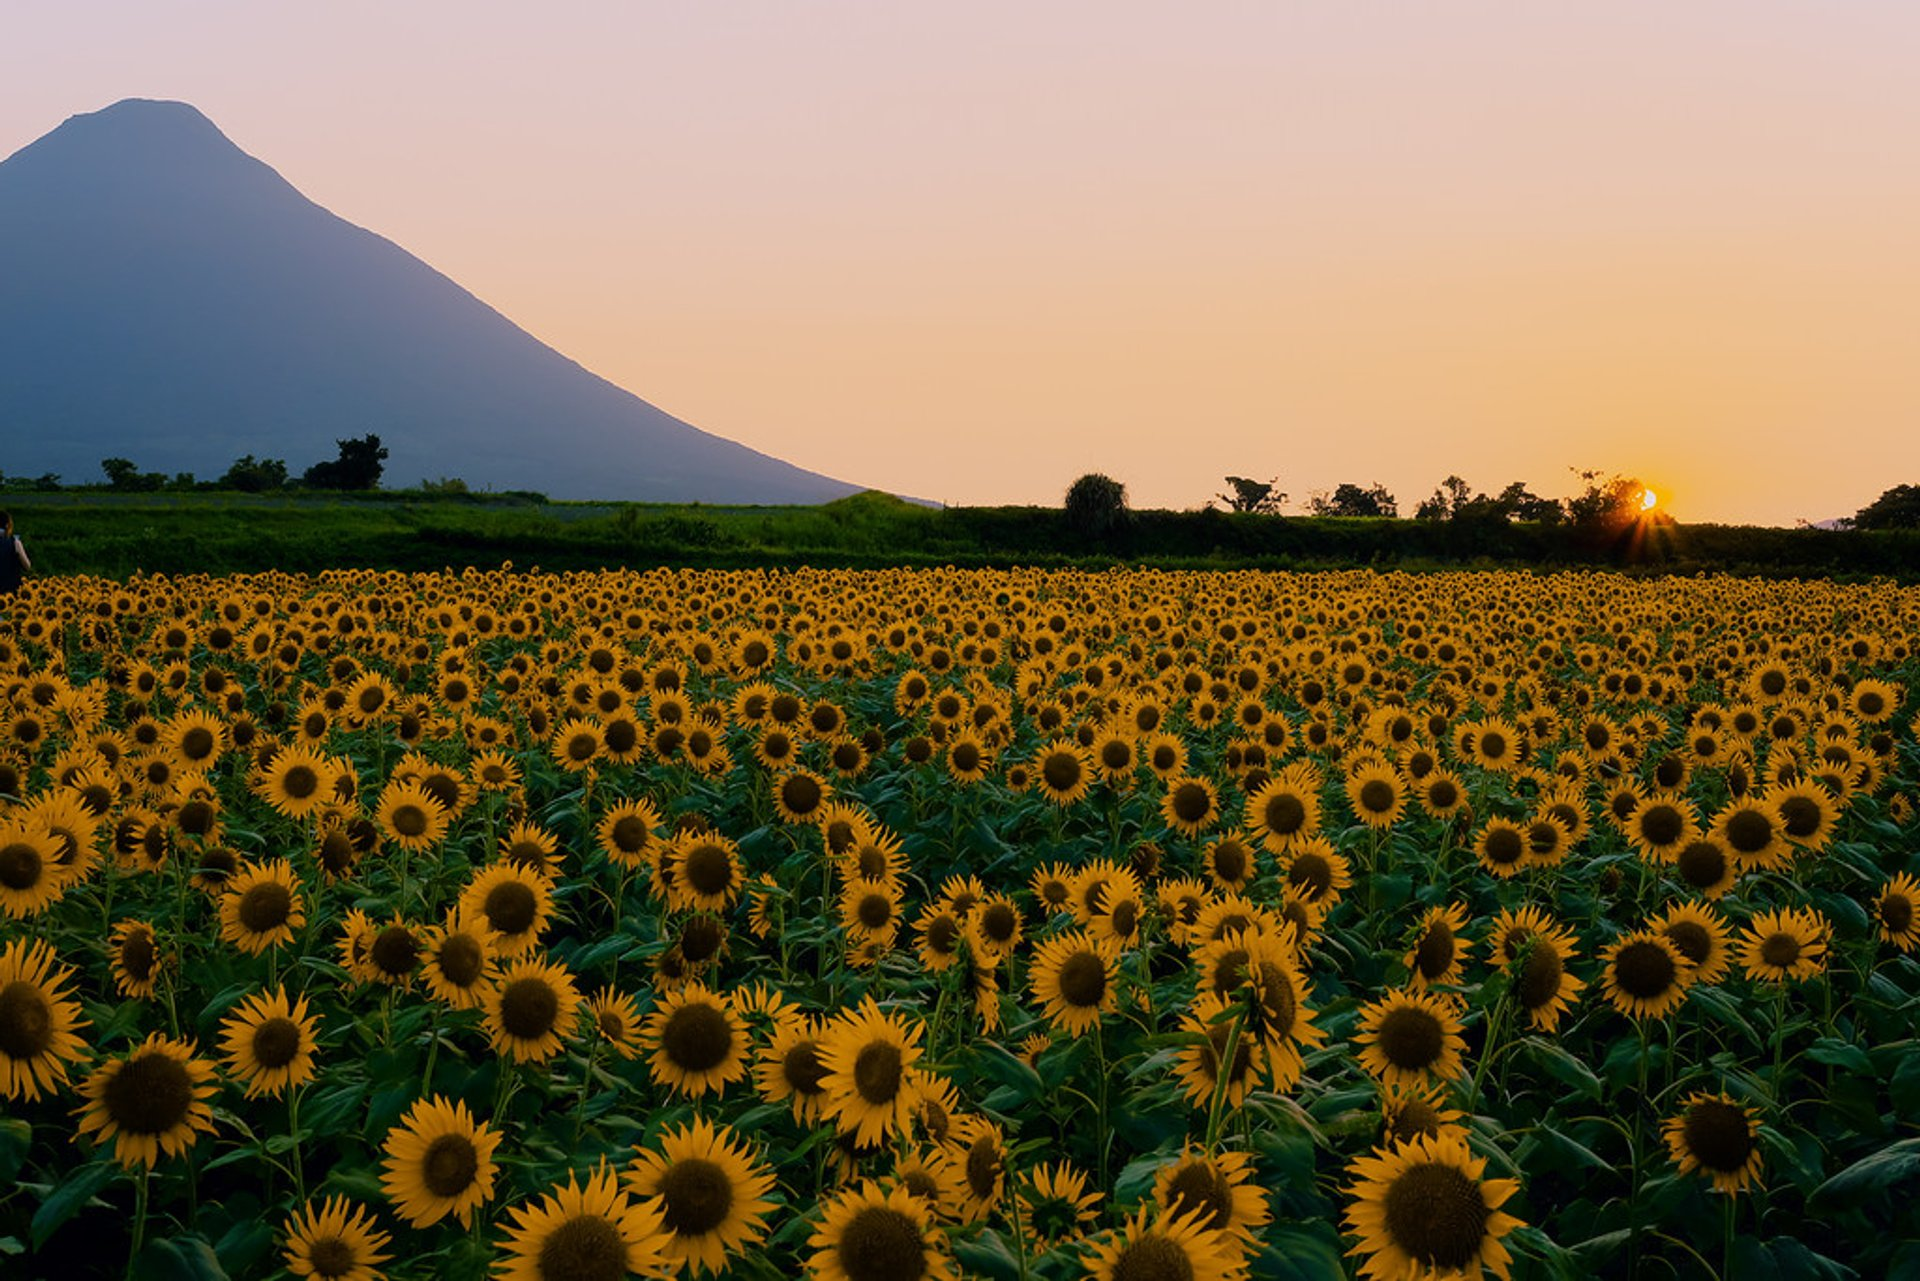 Sunflowers in Japan 2019 - Best Time